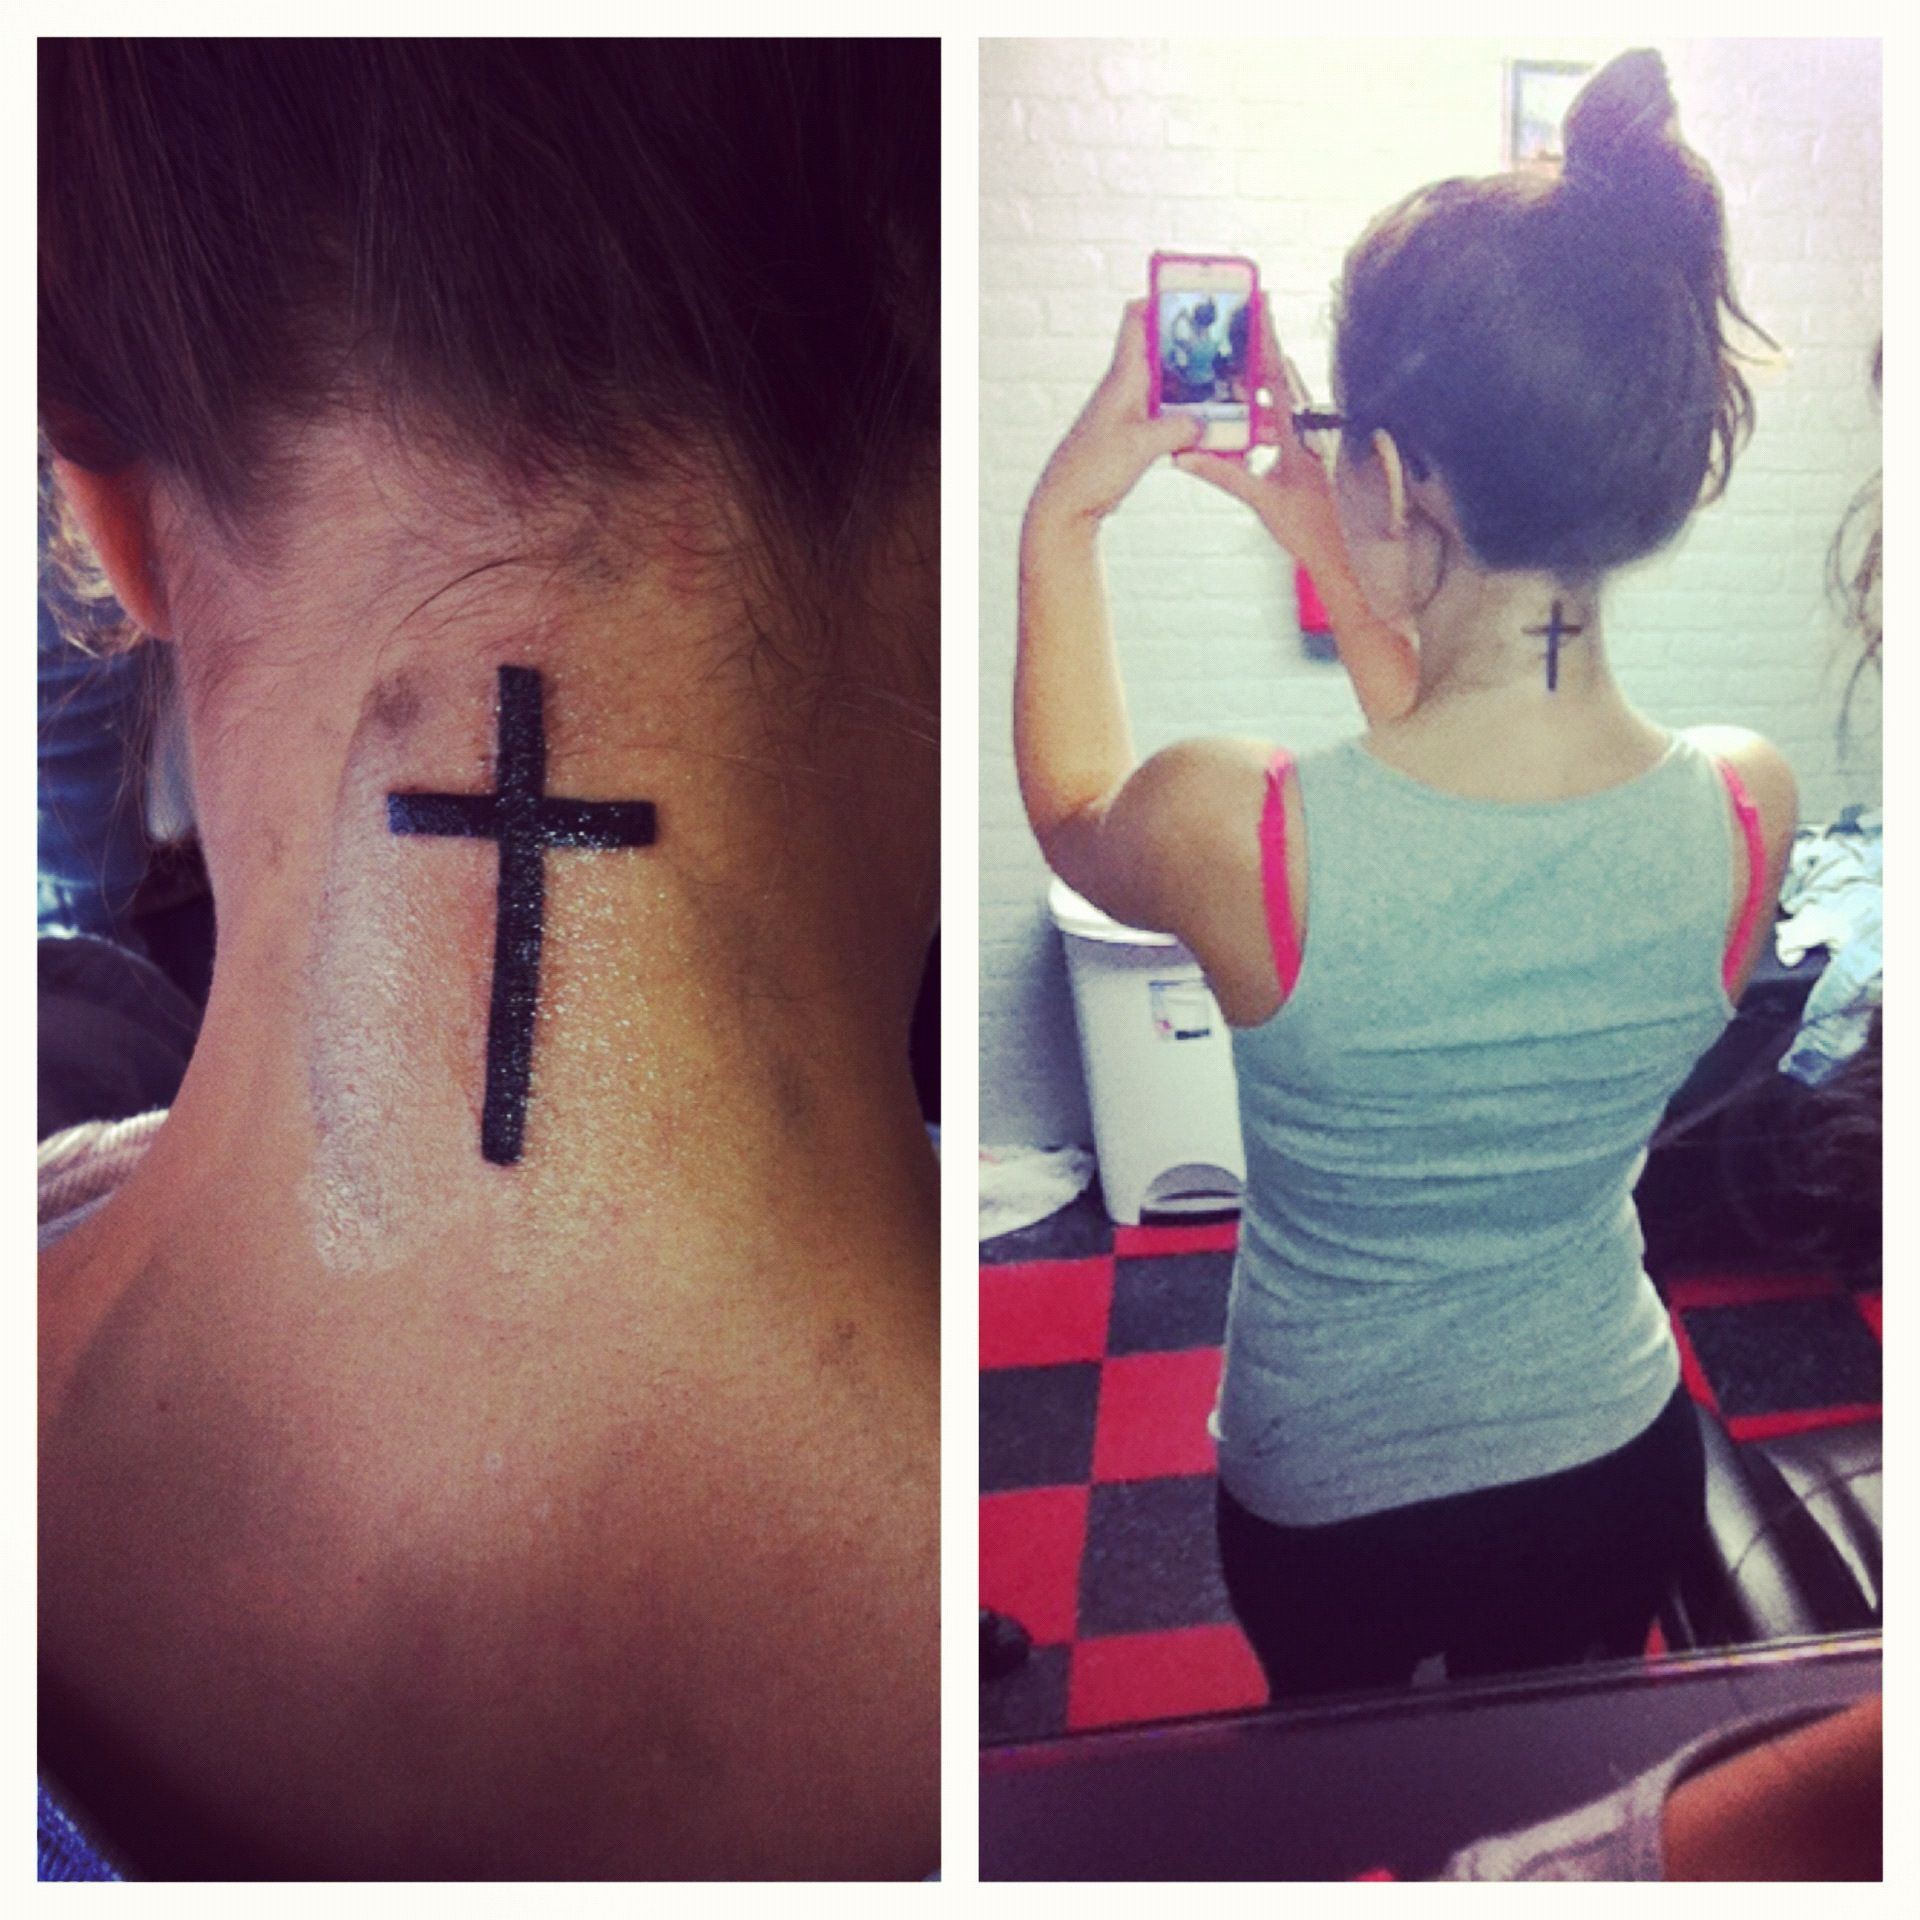 New tattoo time to hash tag away lol girlswithtattoos cross